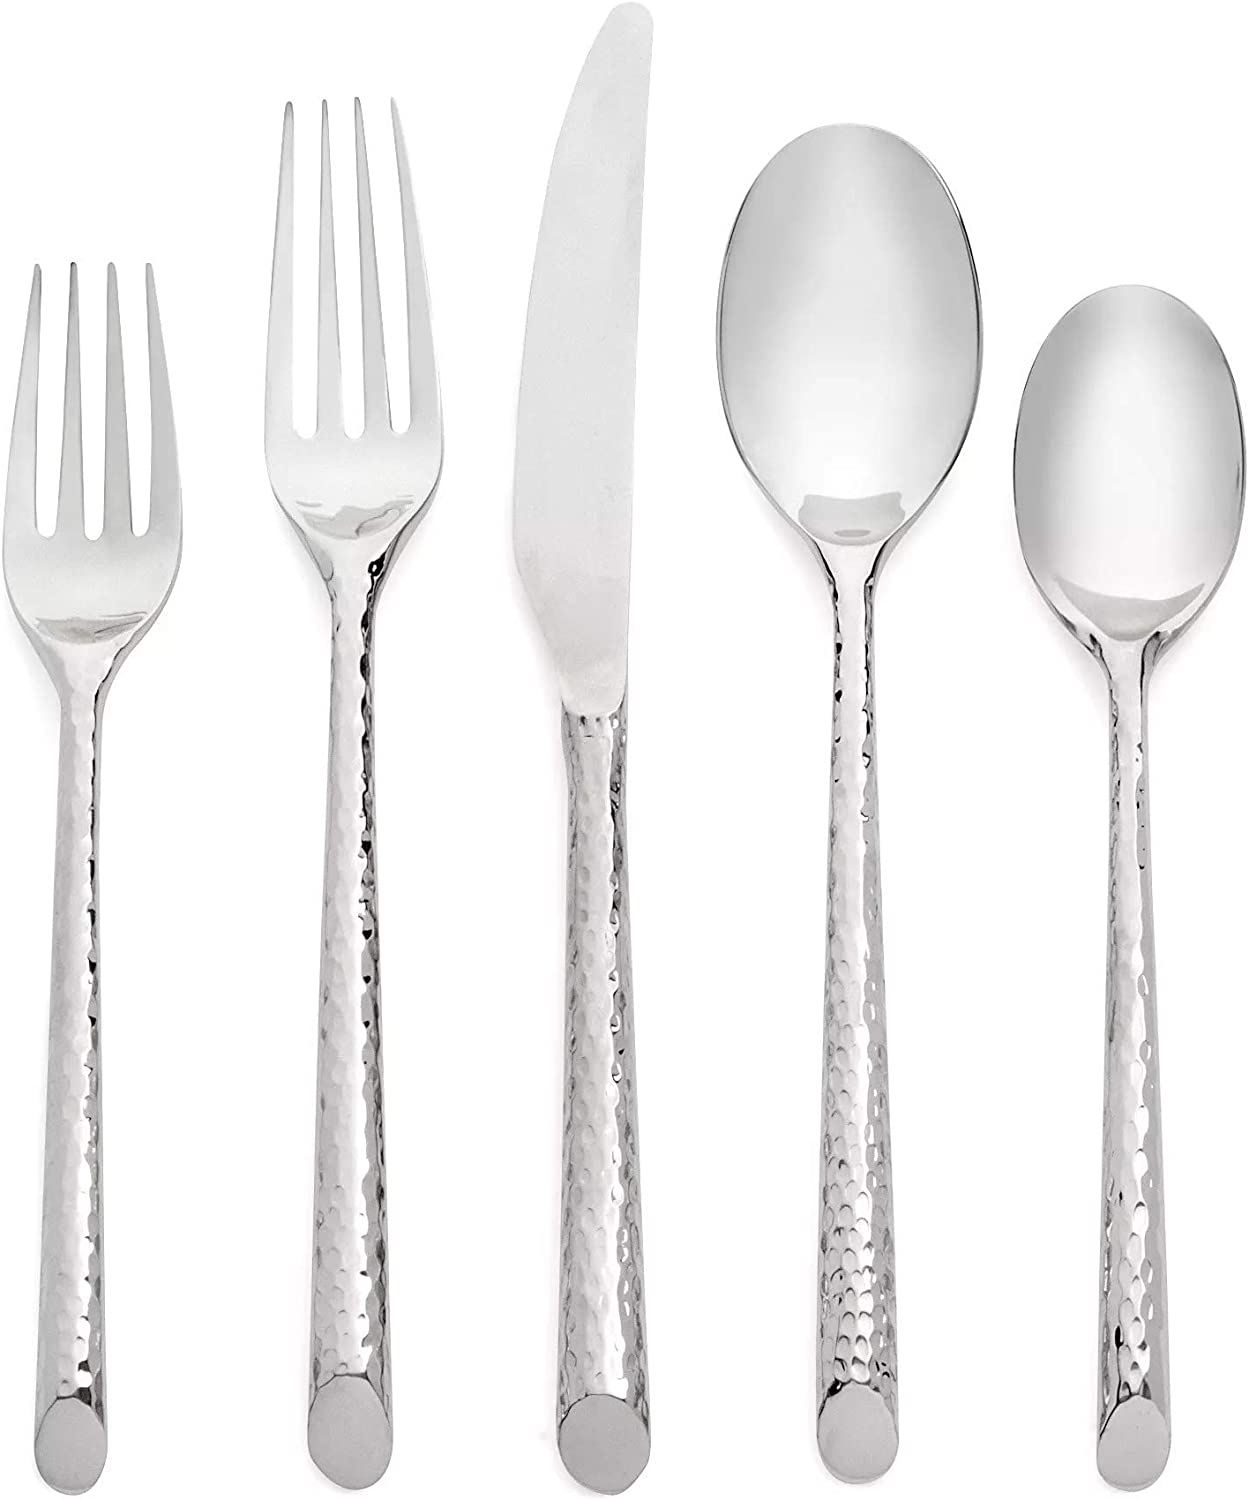 Cambridge Silversmiths Granger Mirror 20-Piece Flatware Silverware Set, 18/10 Stainless Steel, Service for 4, Includes Forks/Spoons/Knives